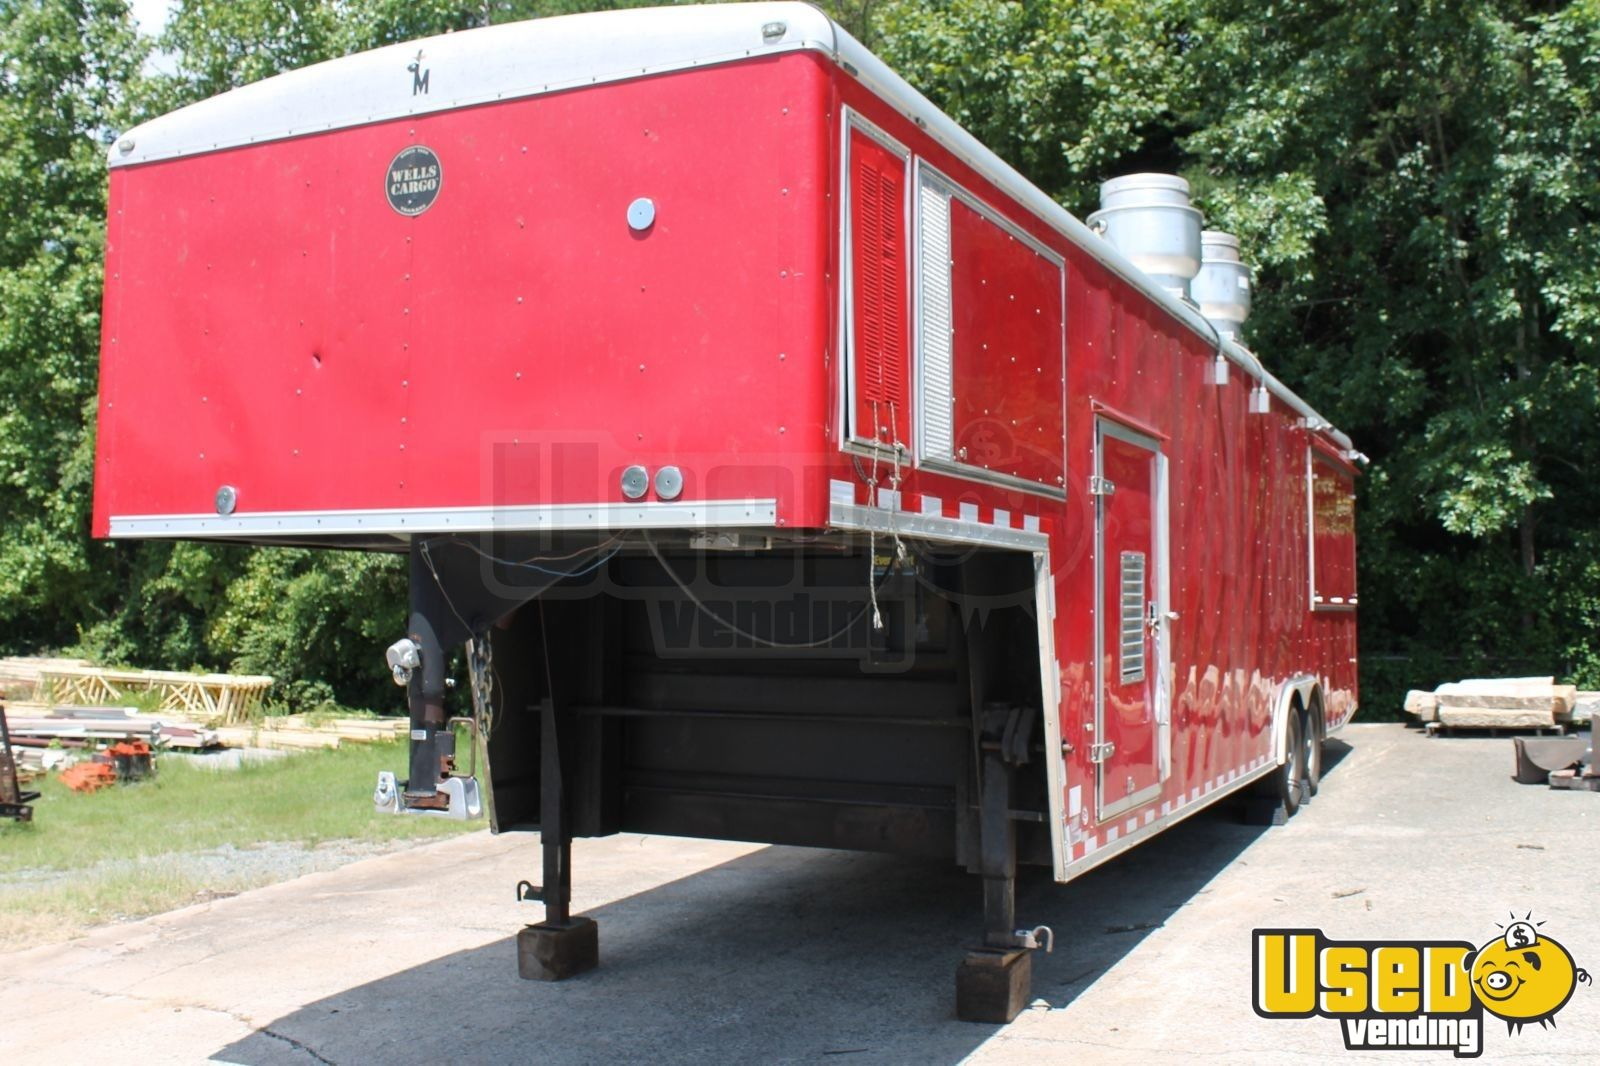 2010 Cvg3625w All-purpose Food Trailer Concession Window North Carolina Diesel Engine for Sale - 3